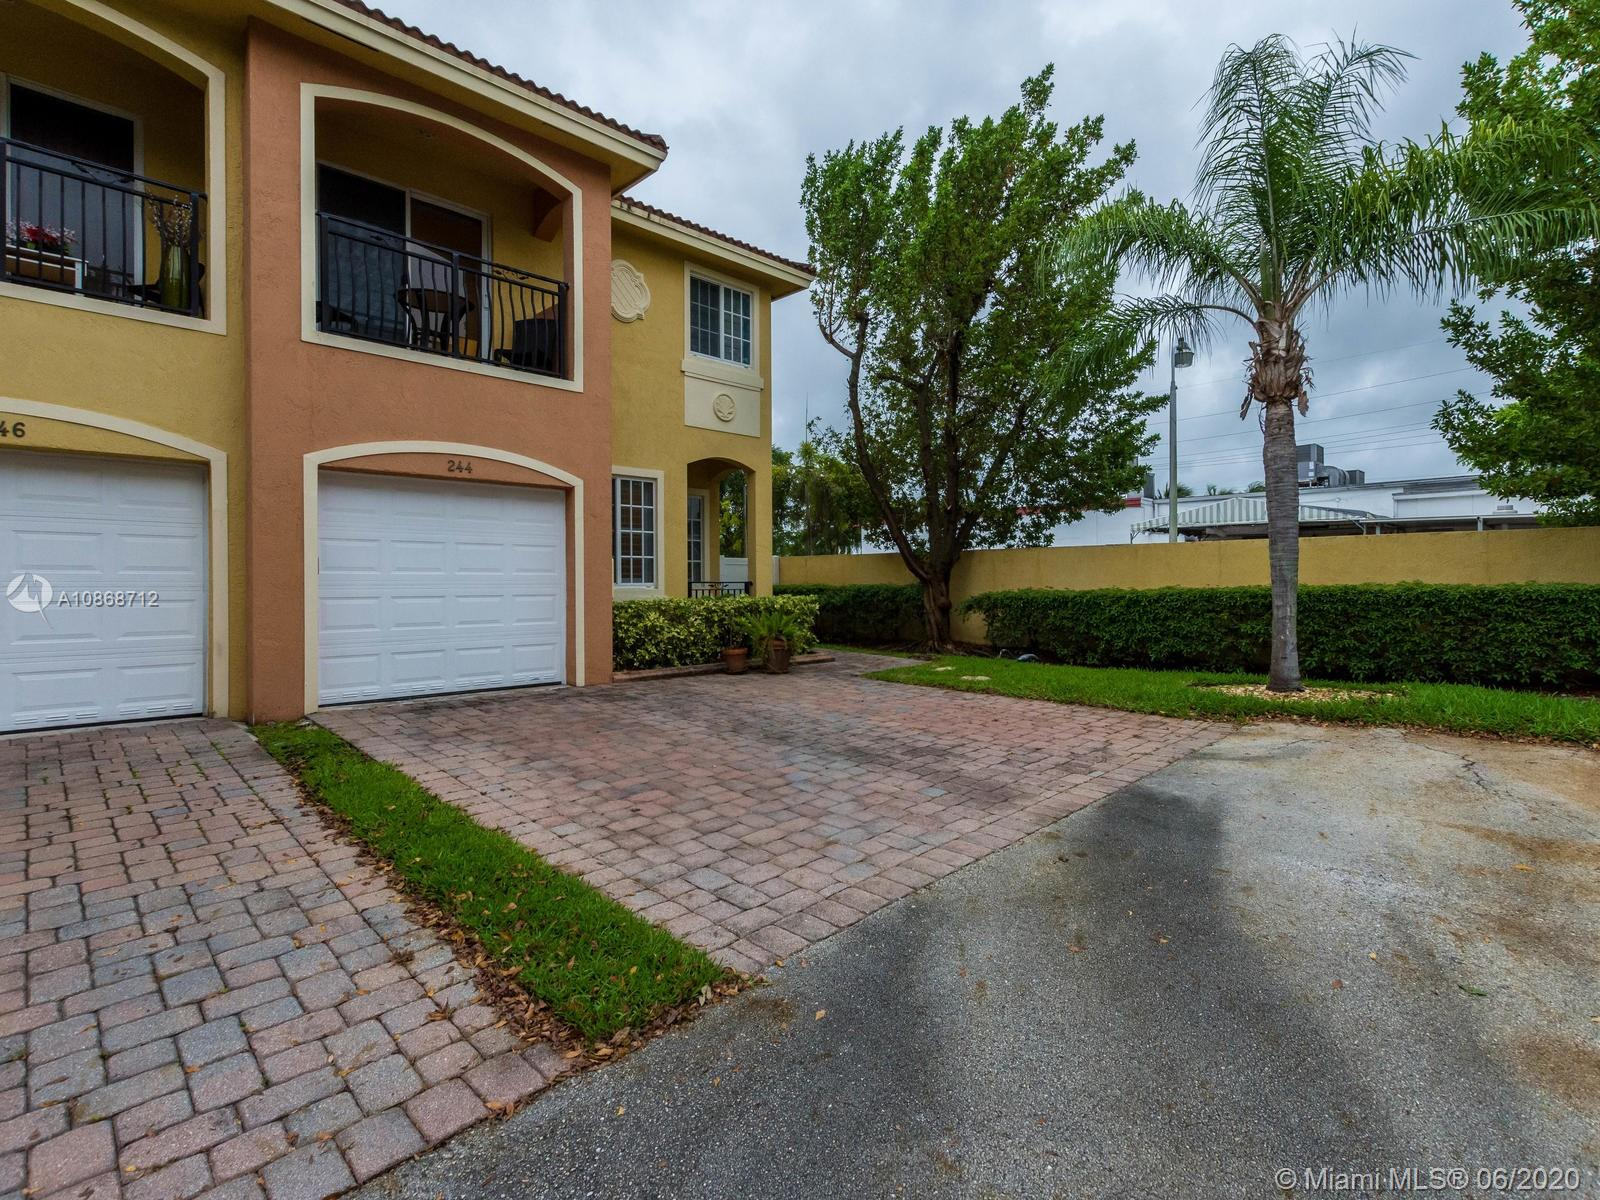 244 SE 2nd Ave #244 For Sale A10868712, FL